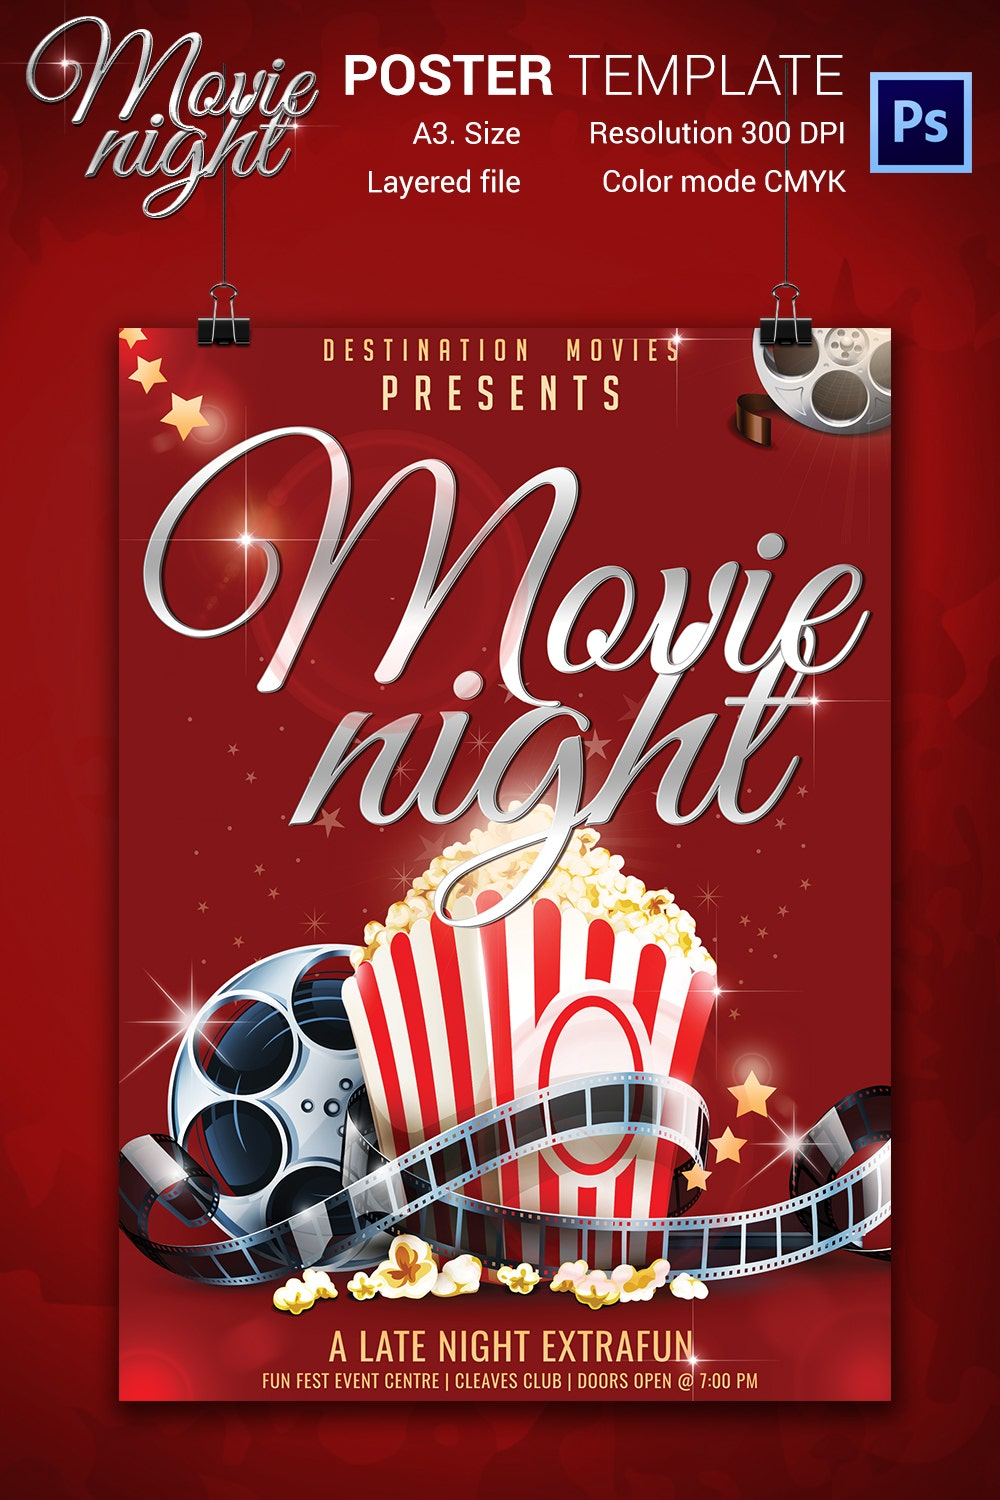 Movie Poster Template – 30+ Free PSD Format Download! | Free ...